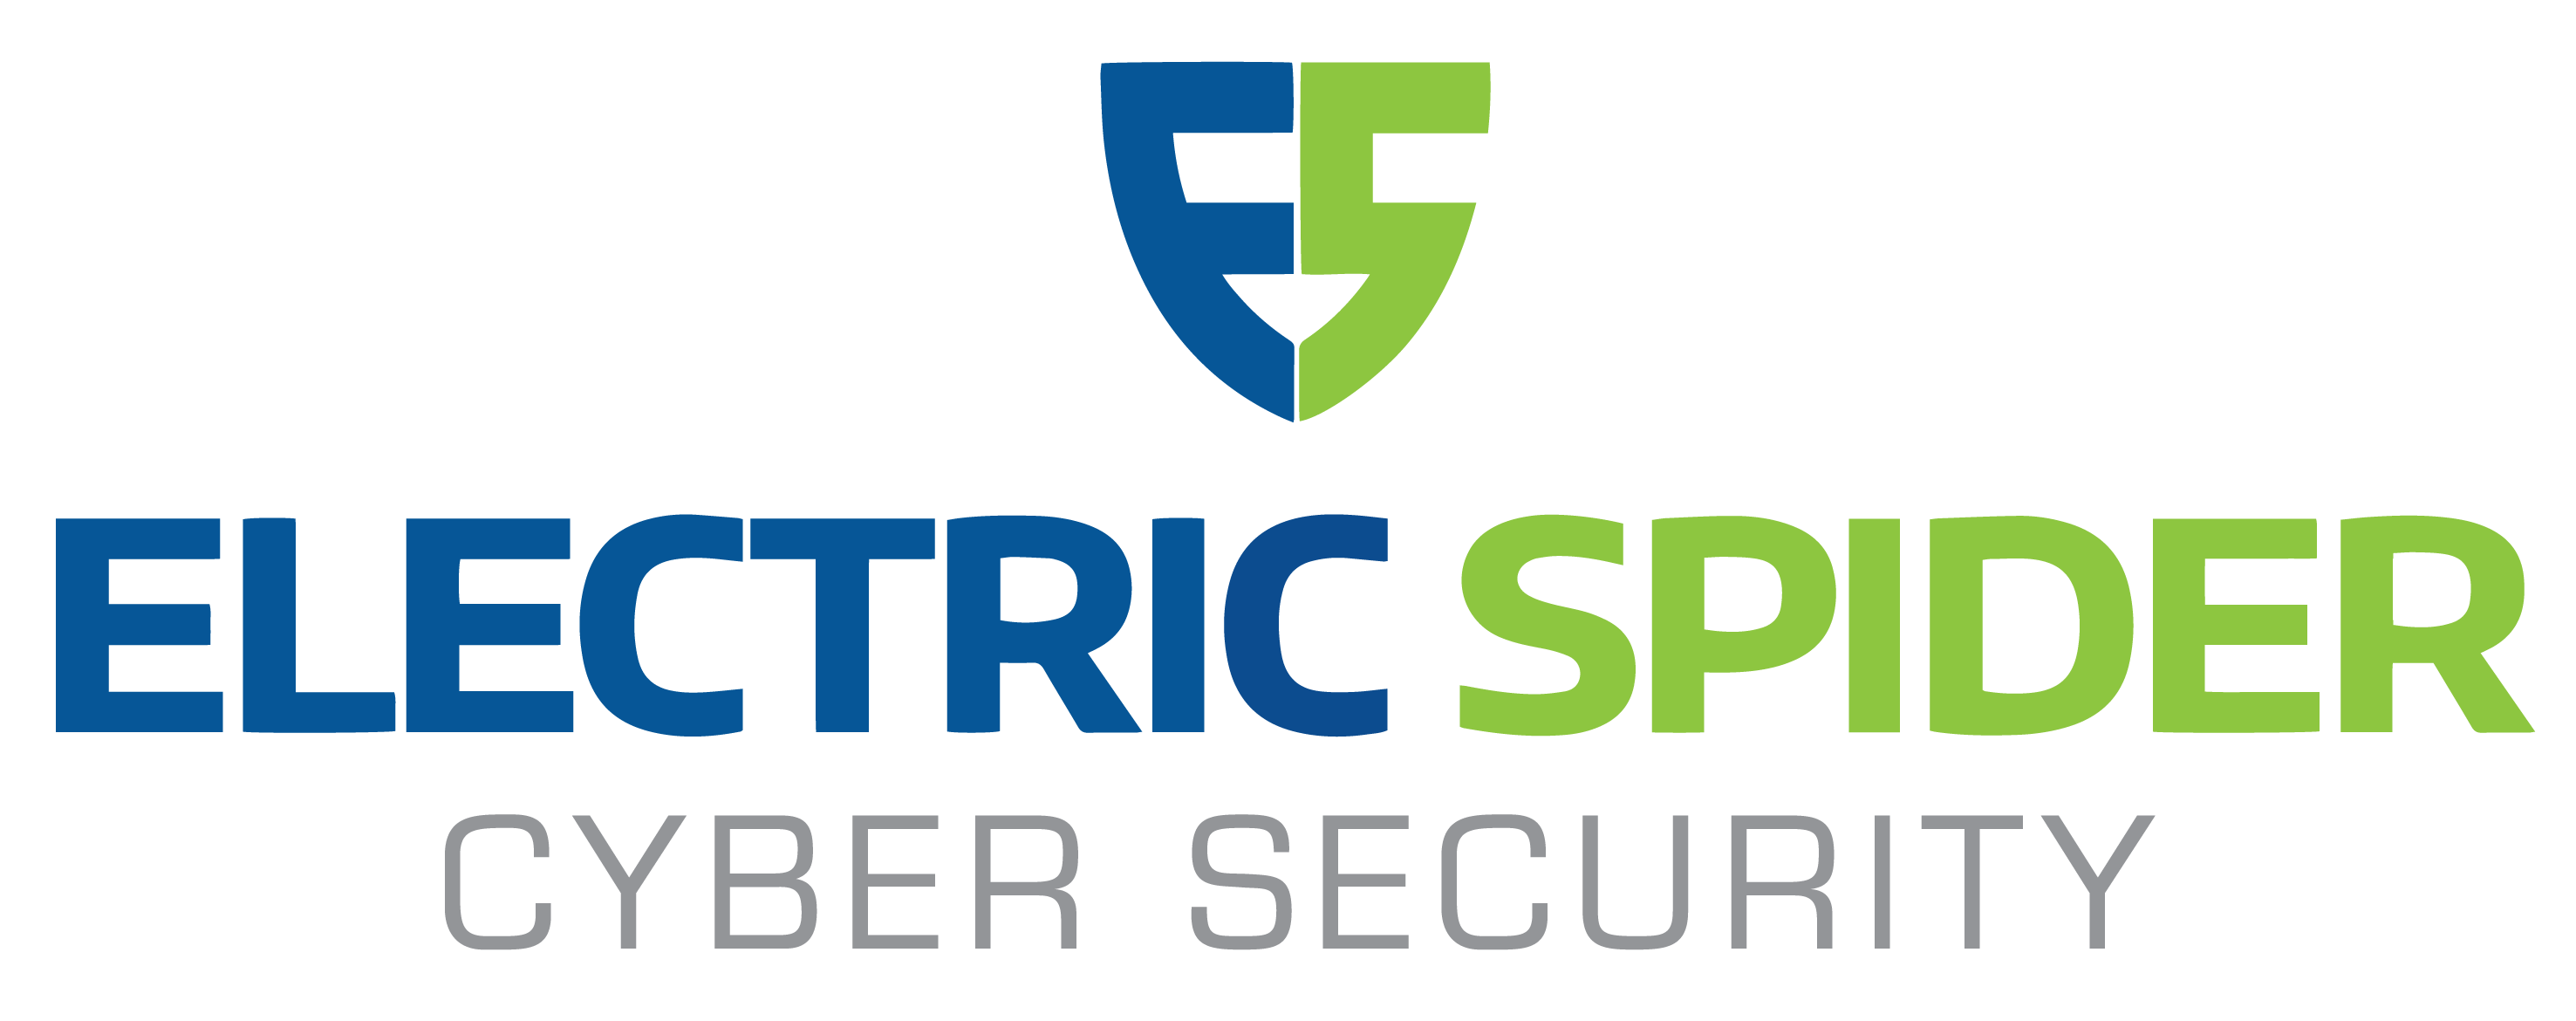 Electric Spider Cybersecurity